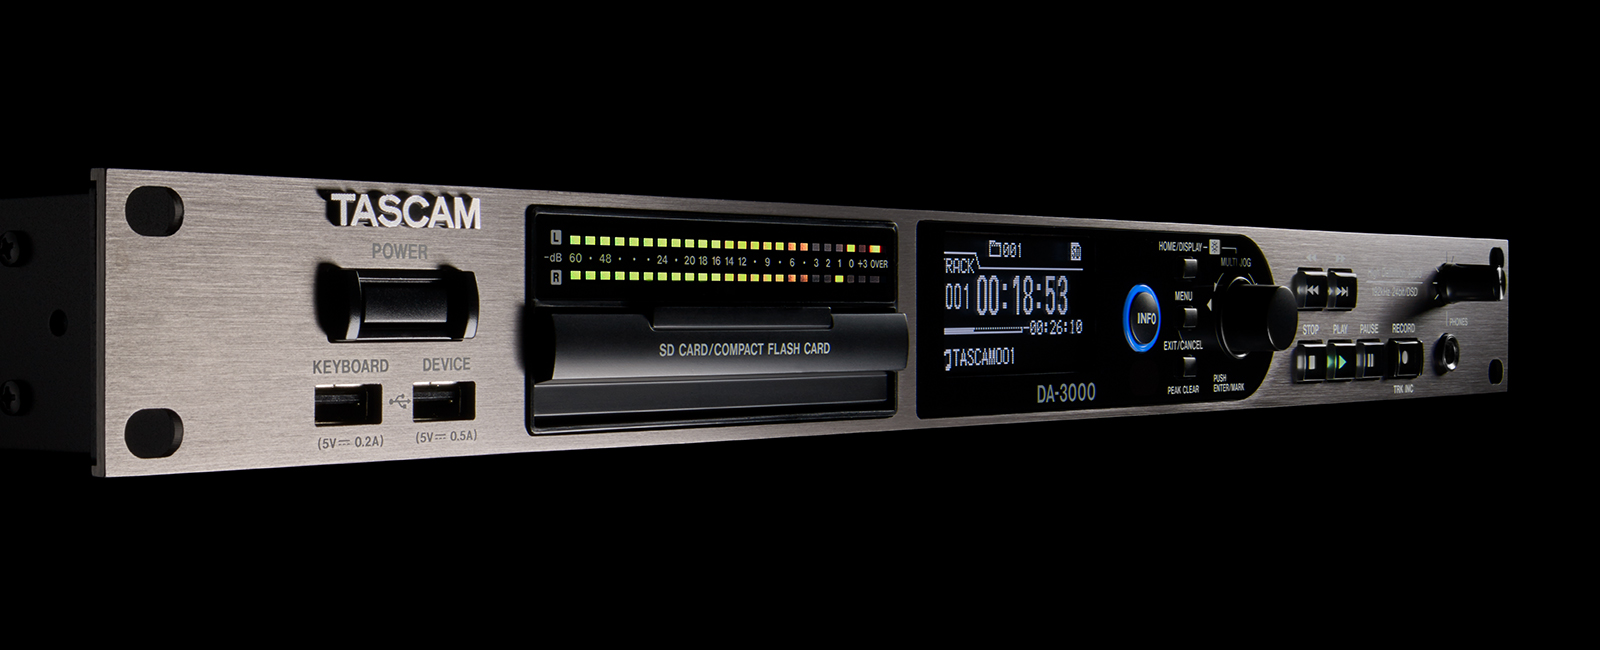 Da 3000 Features Tascam The Project Is A Simple 12bit 8channel Analog To Digital Converter Stereo Master Recorder Ad